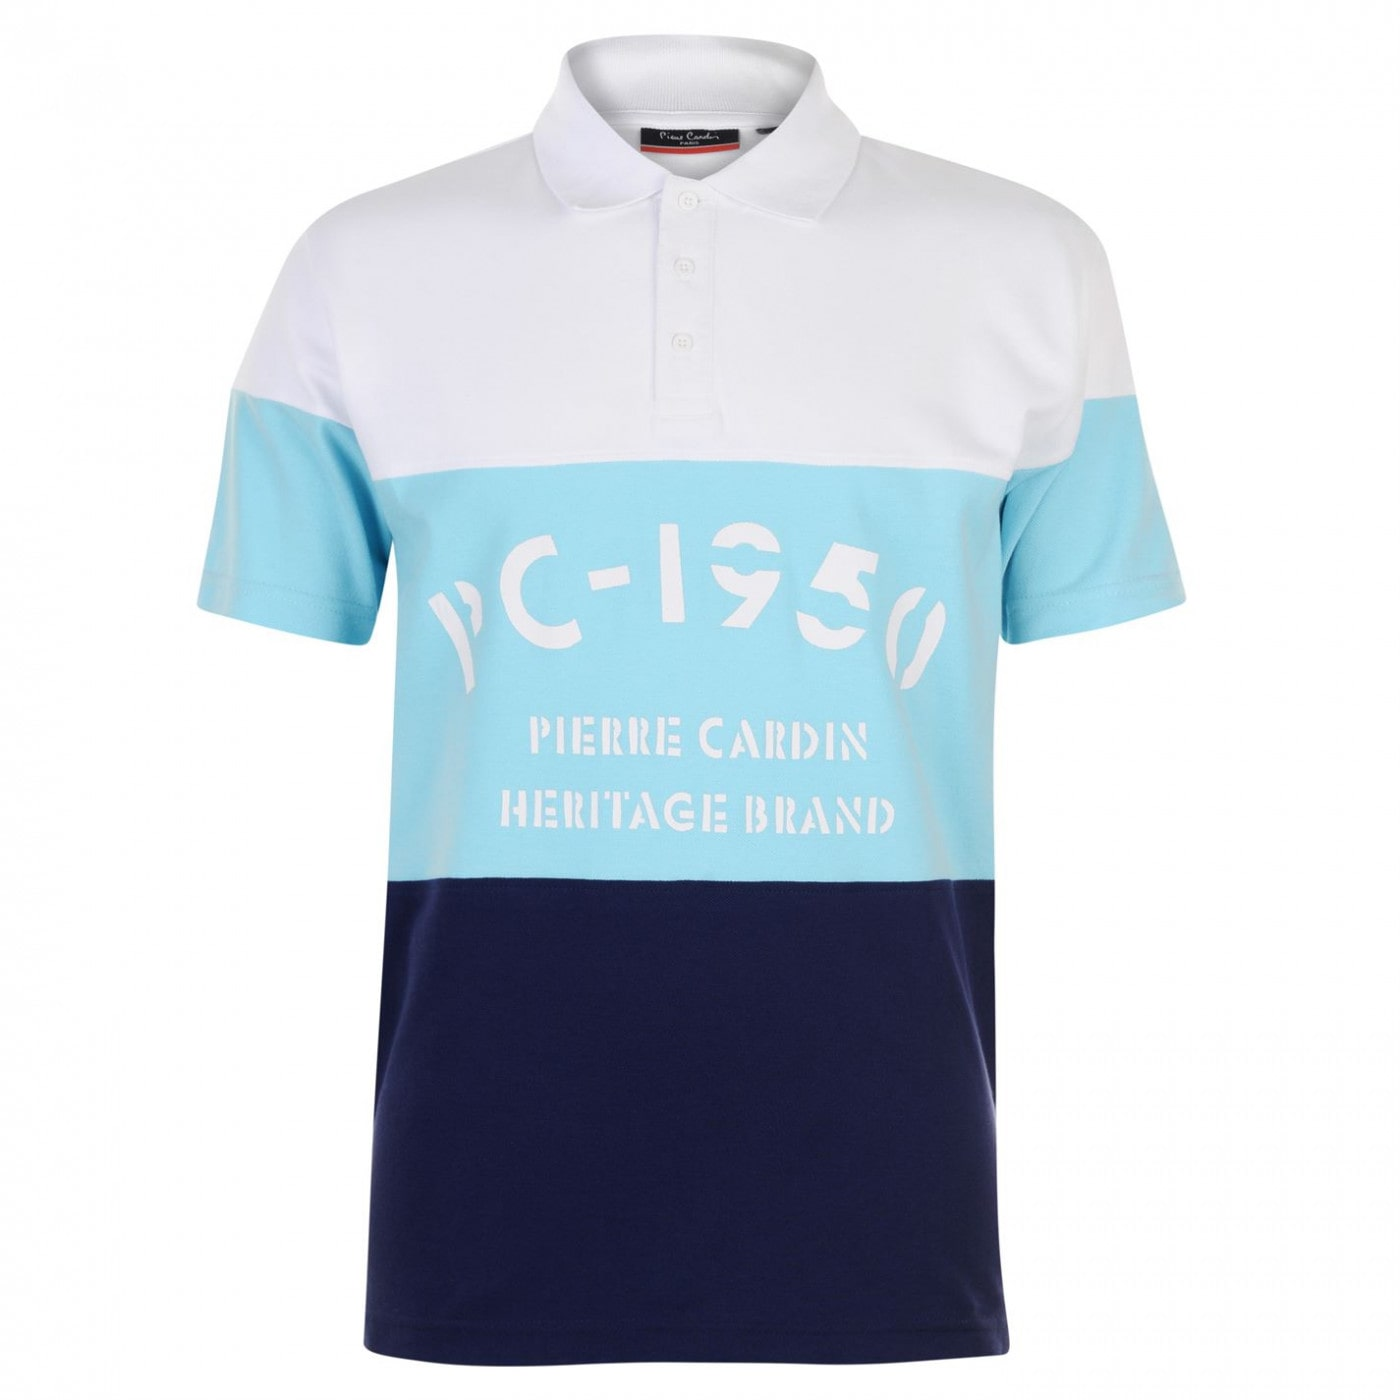 Pierre Cardin Cut and Sew Printed Polo Mens